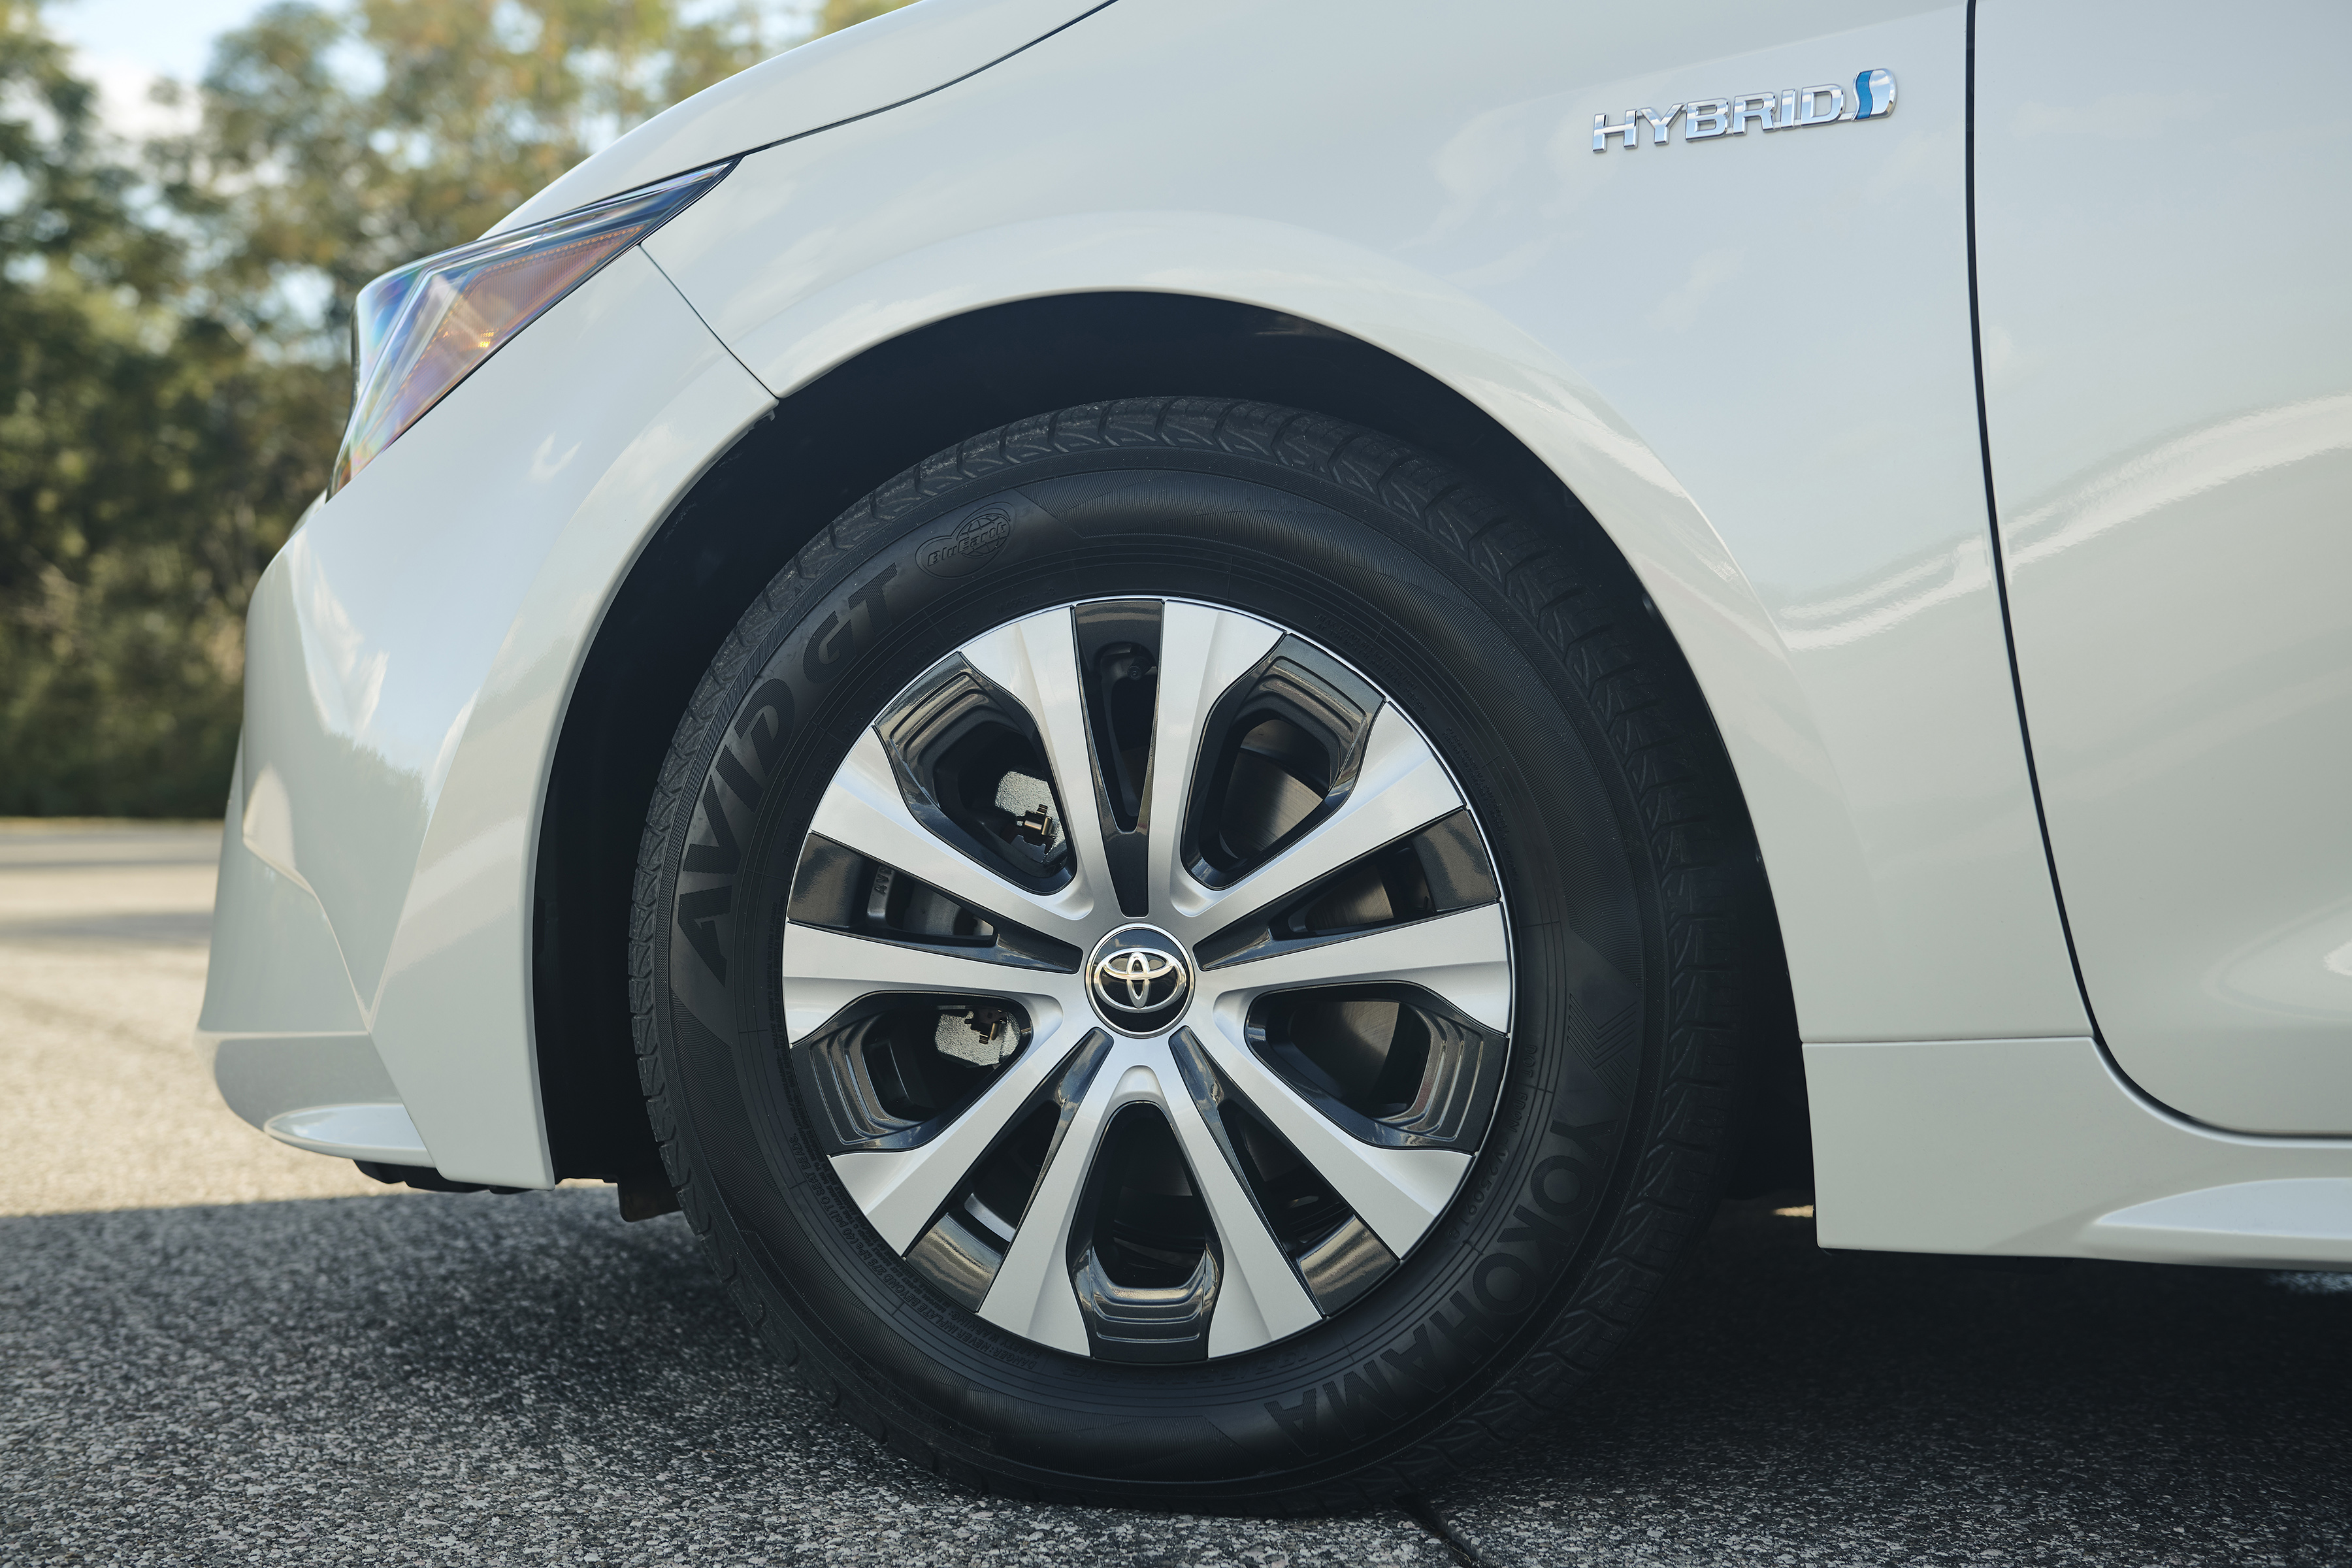 Low Rolling Resistance Tires and the Future of Hybrids